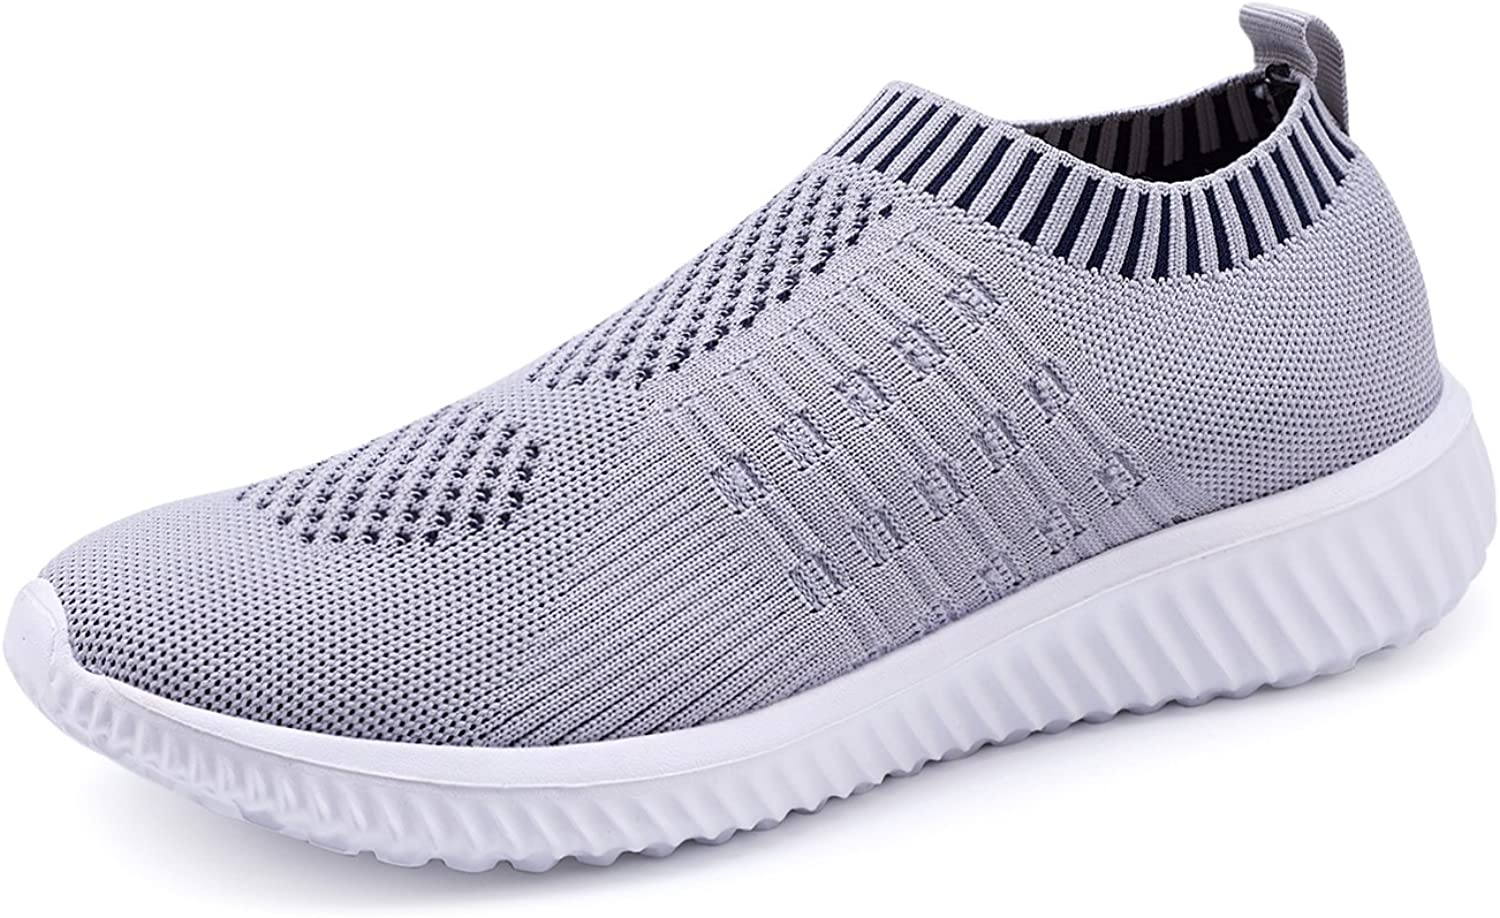 XMDR Women's Fashion Sneakers Breathable Mesh Casual Sport shoes Comfortable Walking shoes